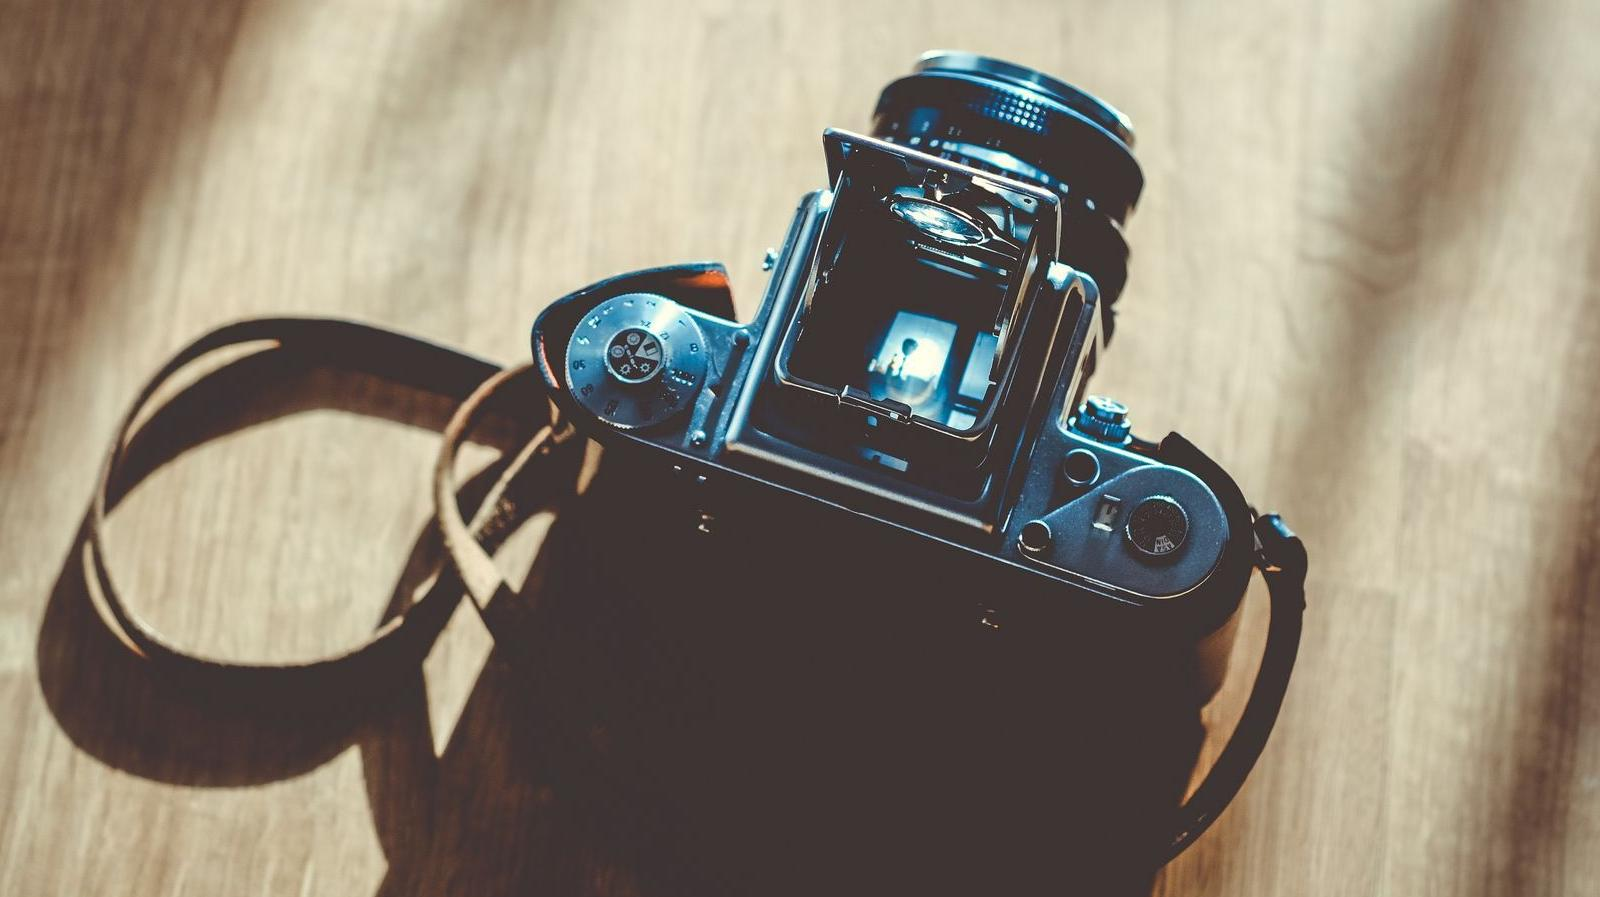 Villa Paloma - Stock photo of a camera sitting on a table